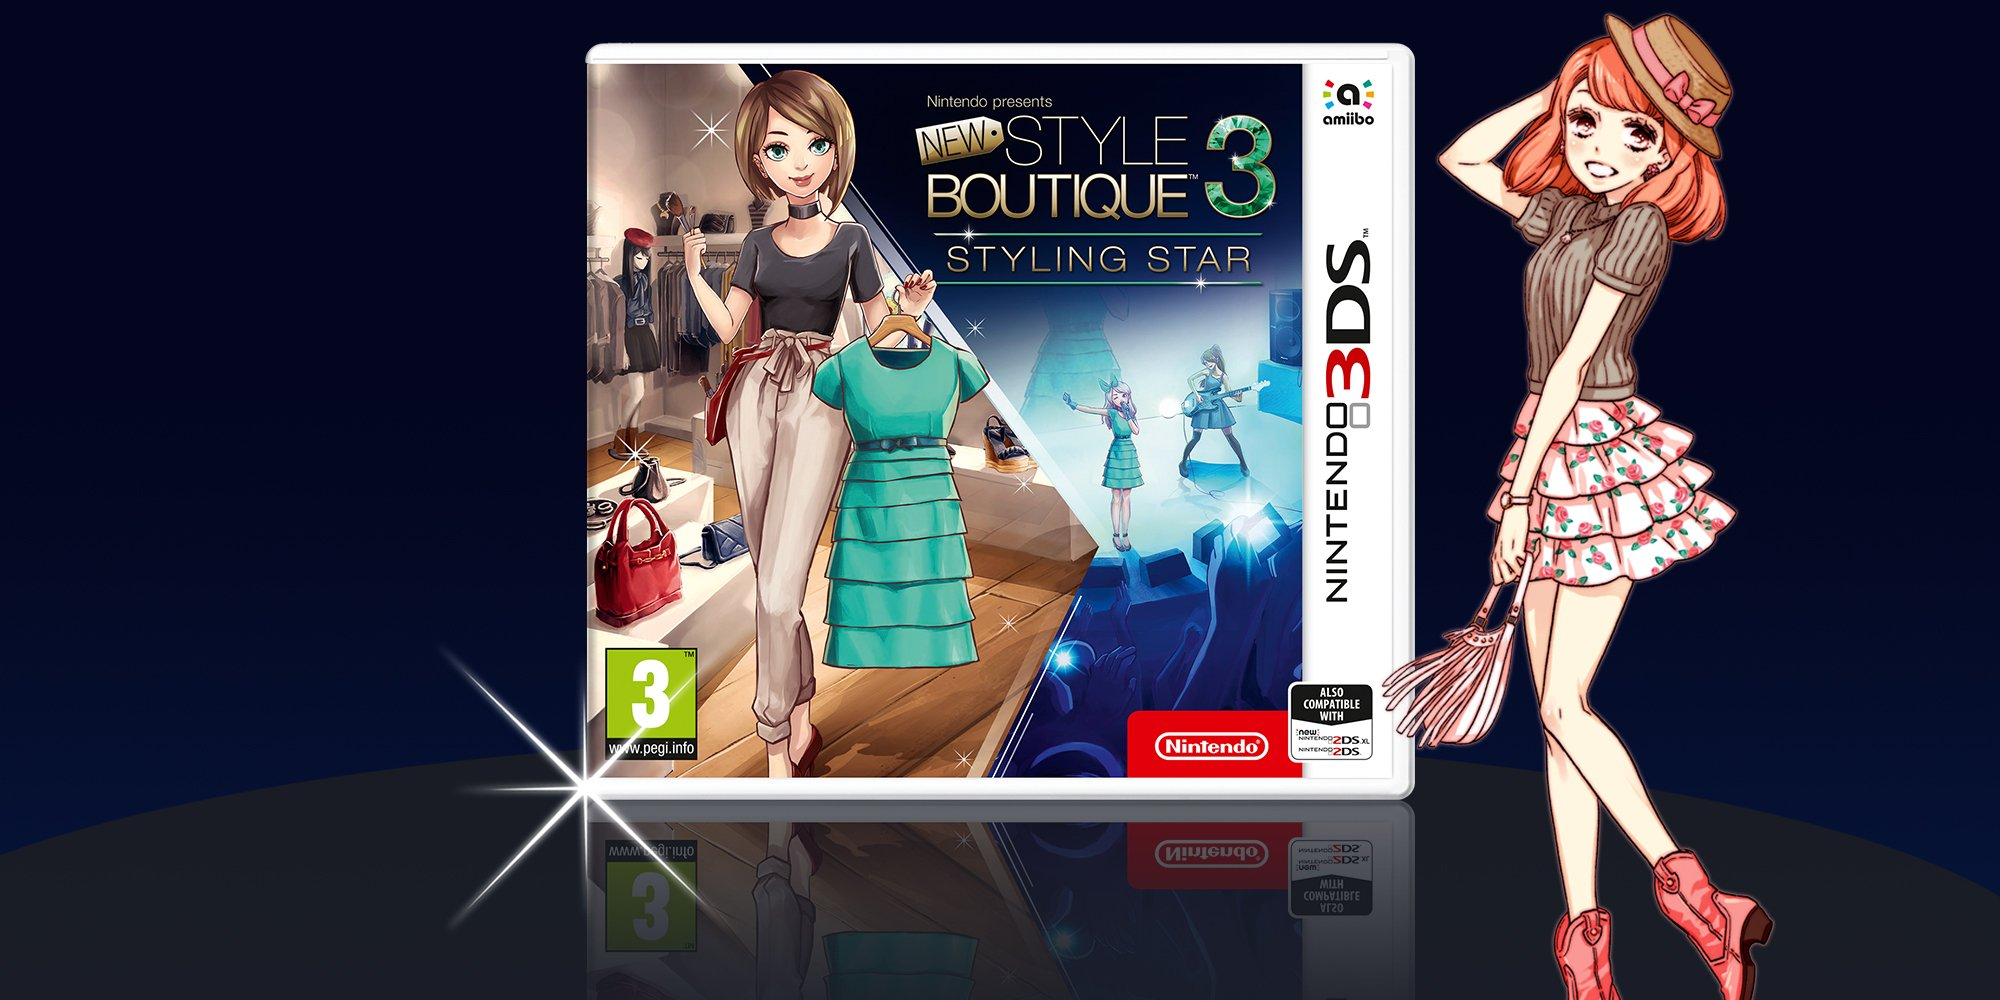 N,Direct] Nintendo Presents New Style Boutique 3 , Styling